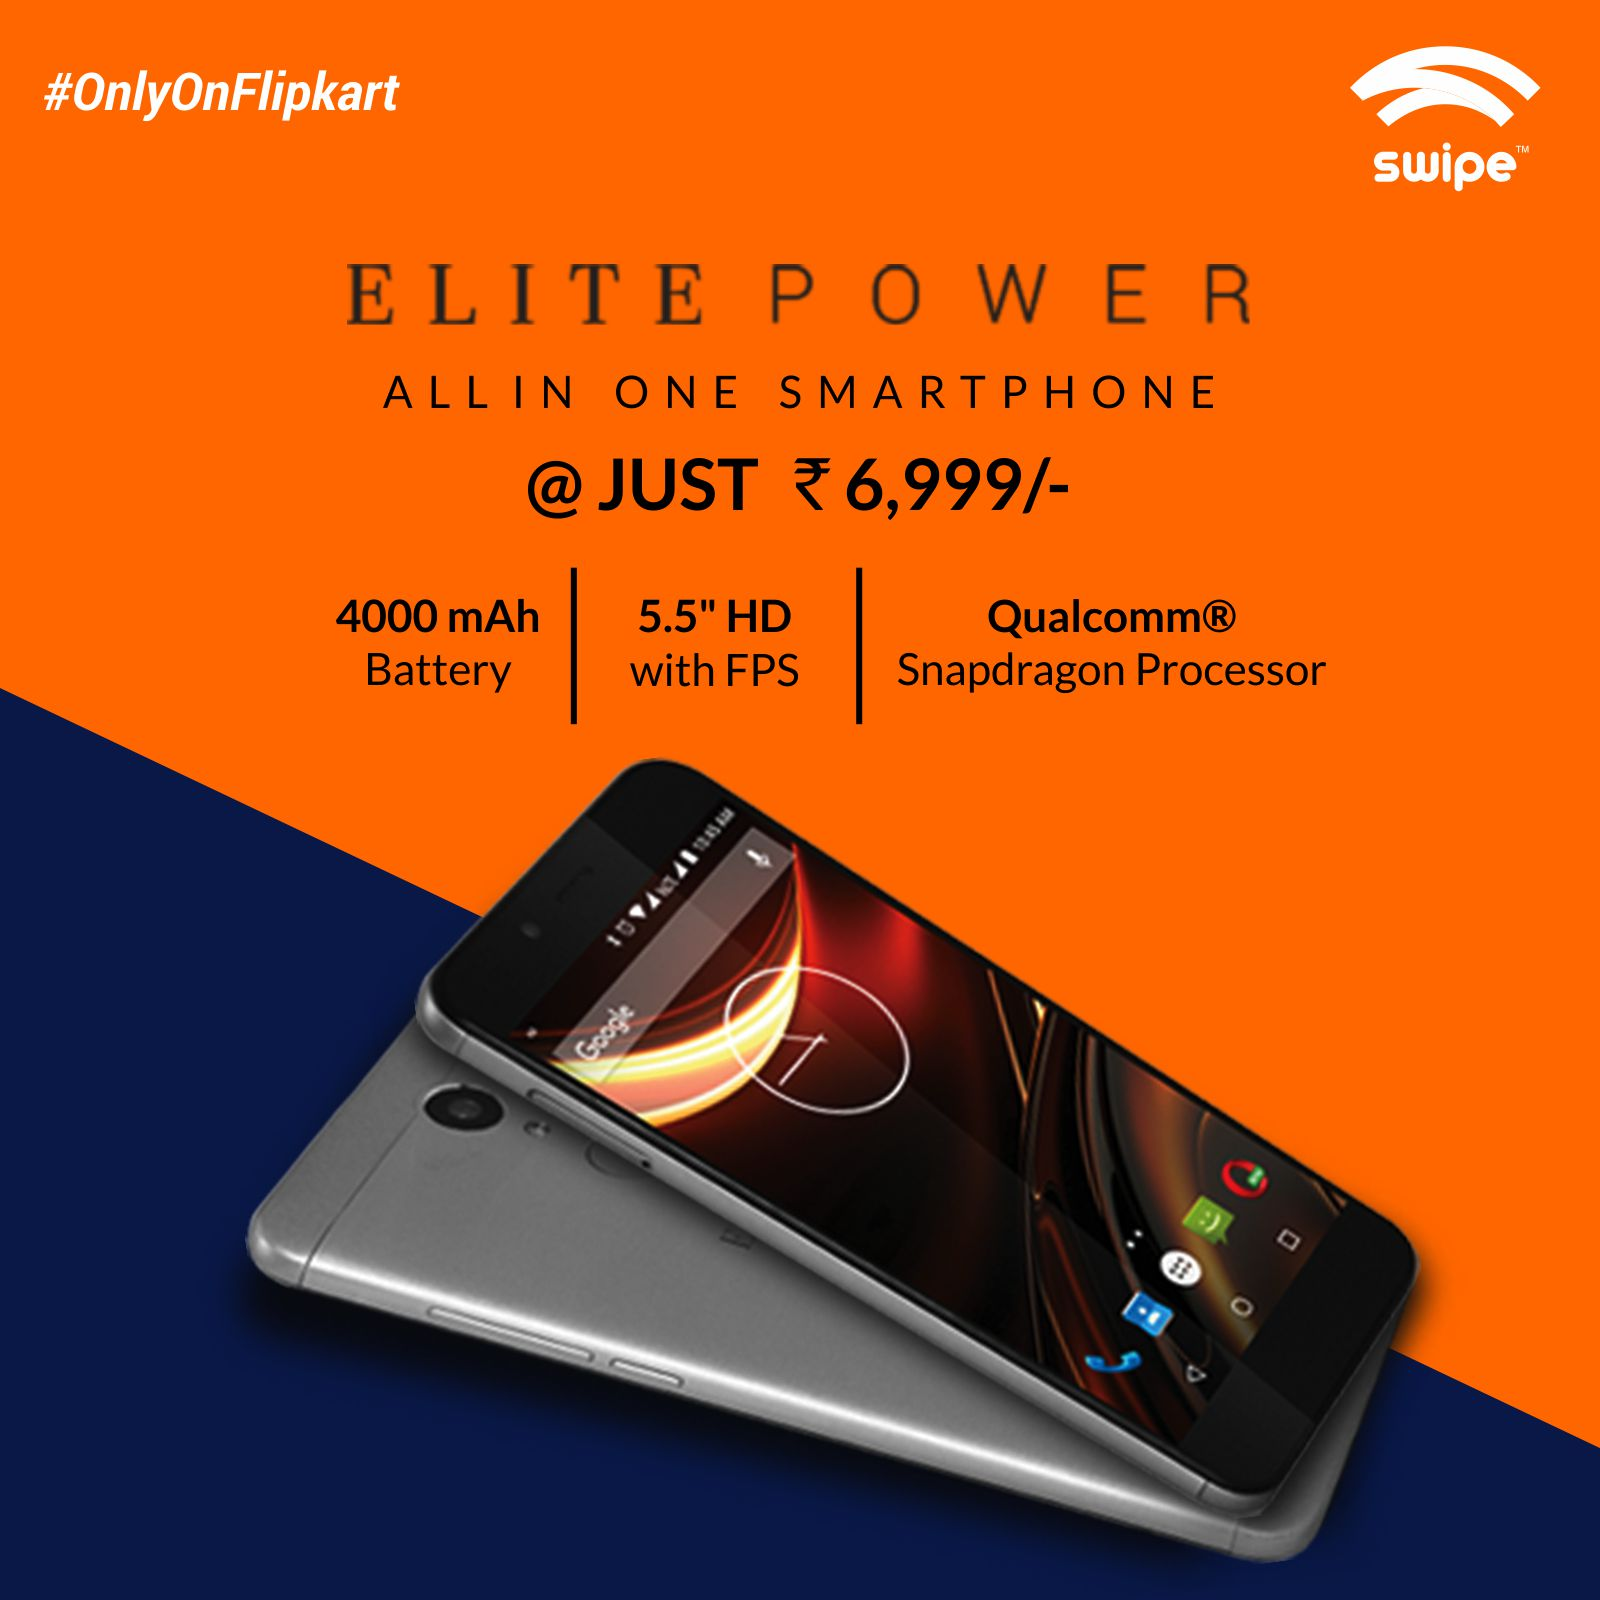 Swipe launches ELITE Power with 4000mAh battery for just Rs. 6,999/- exclusively on Flipkart